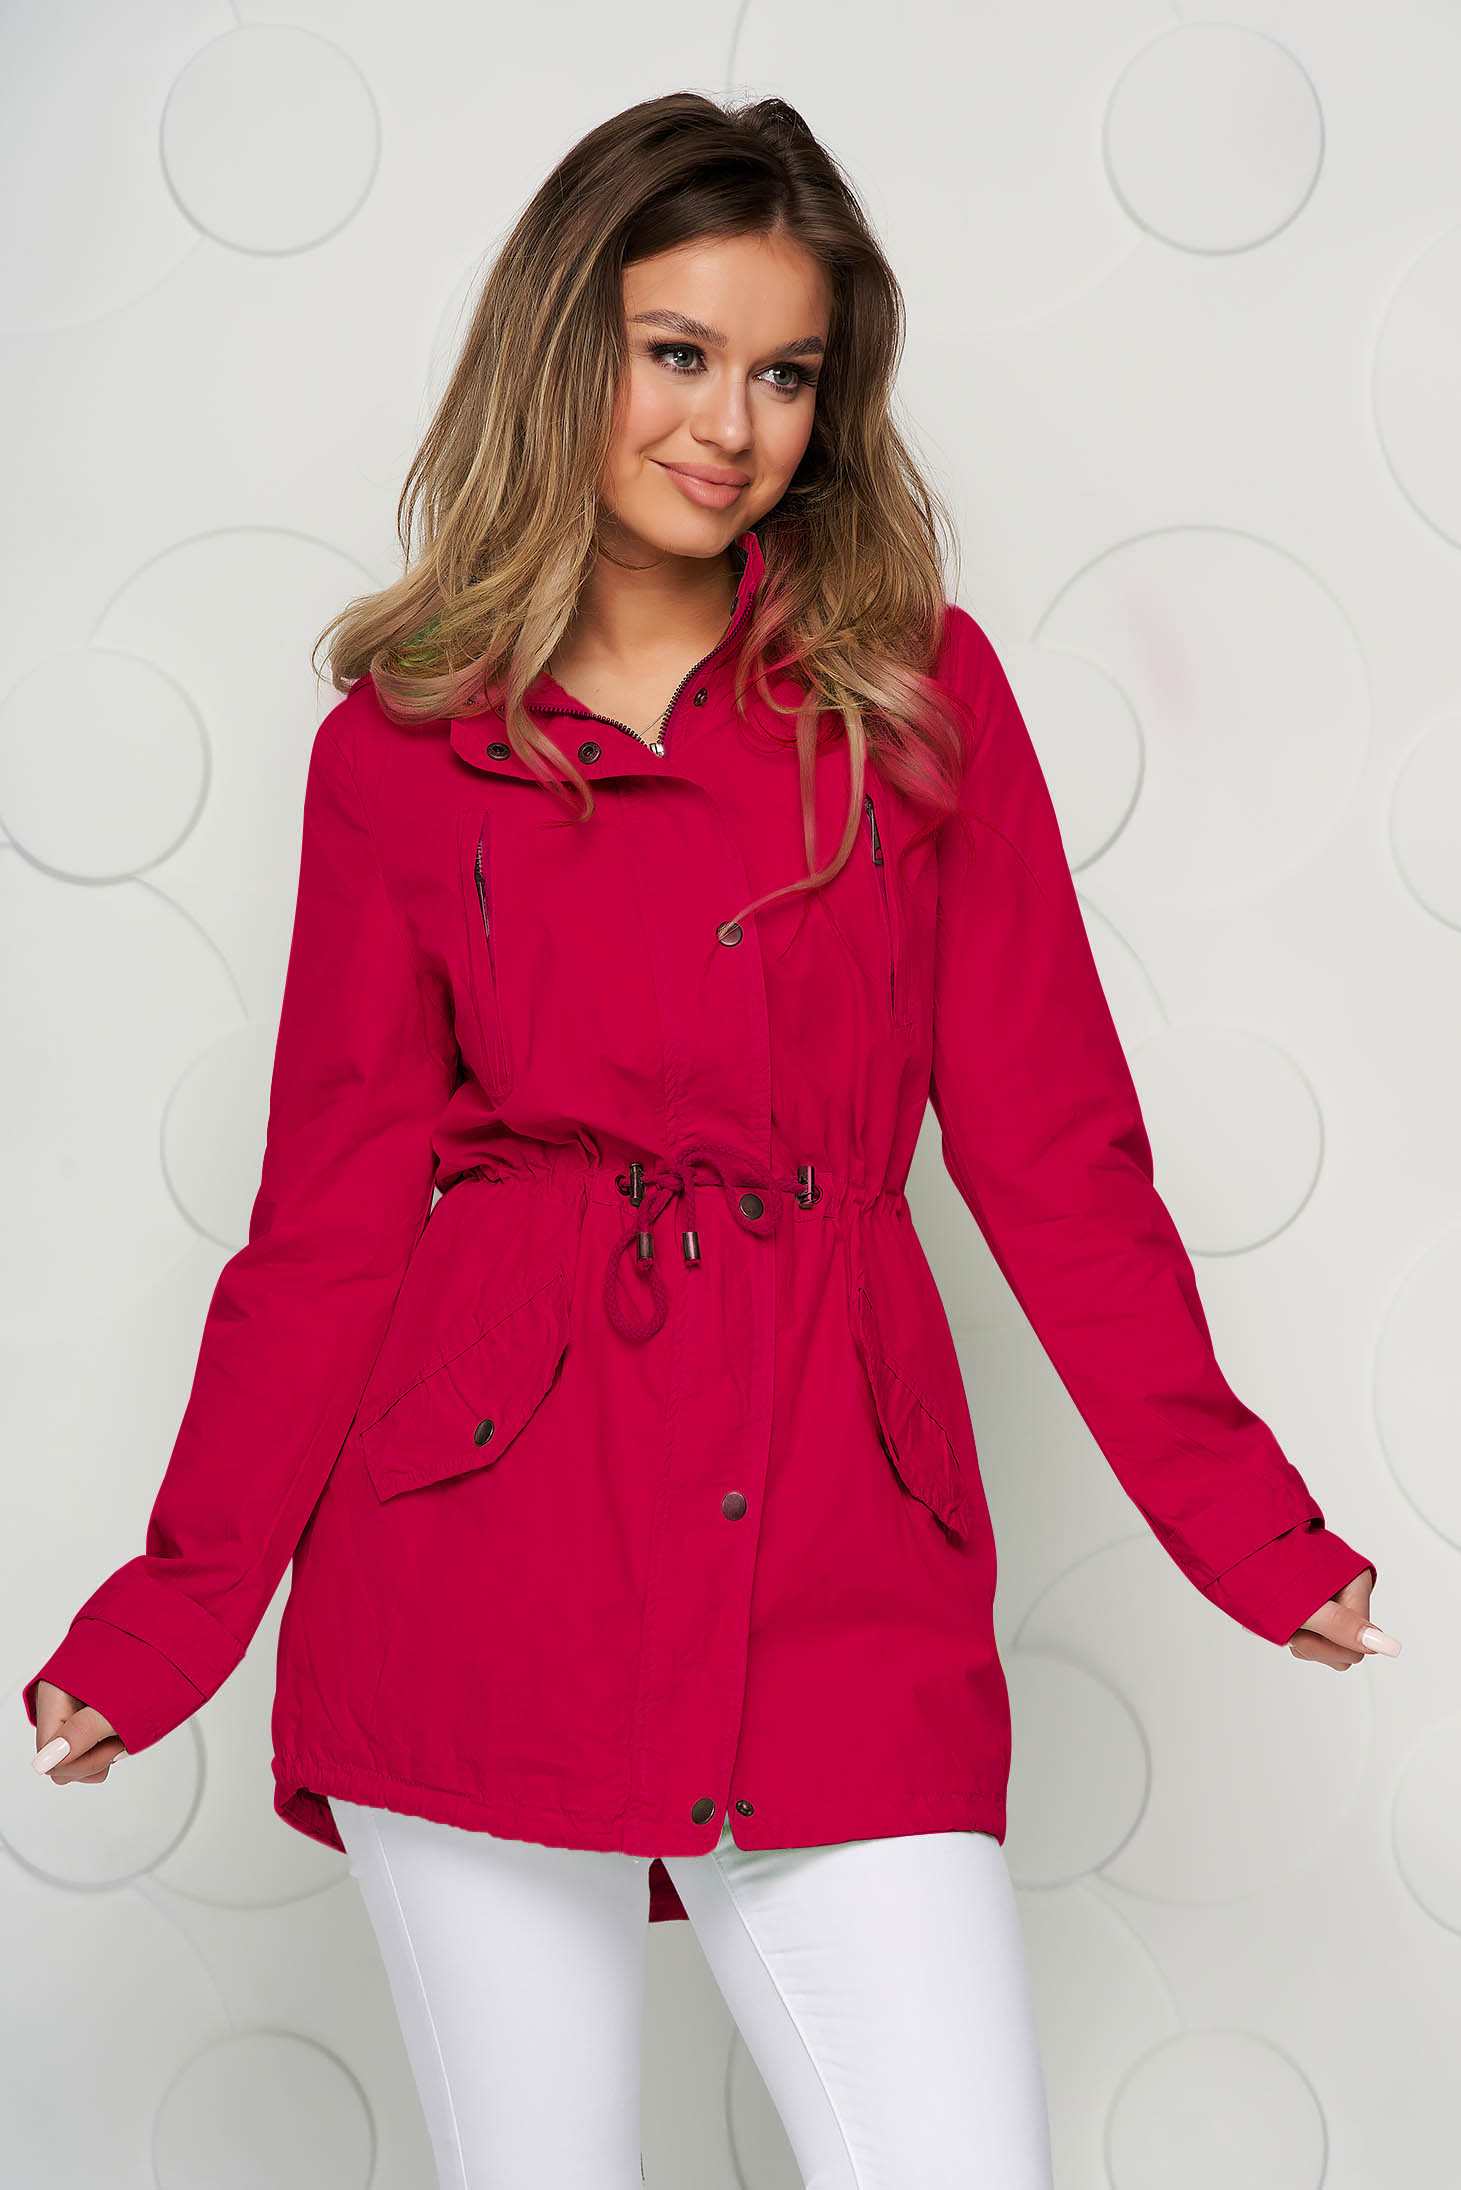 Pink jacket with laced details slicker fabric the jacket has hood and pockets